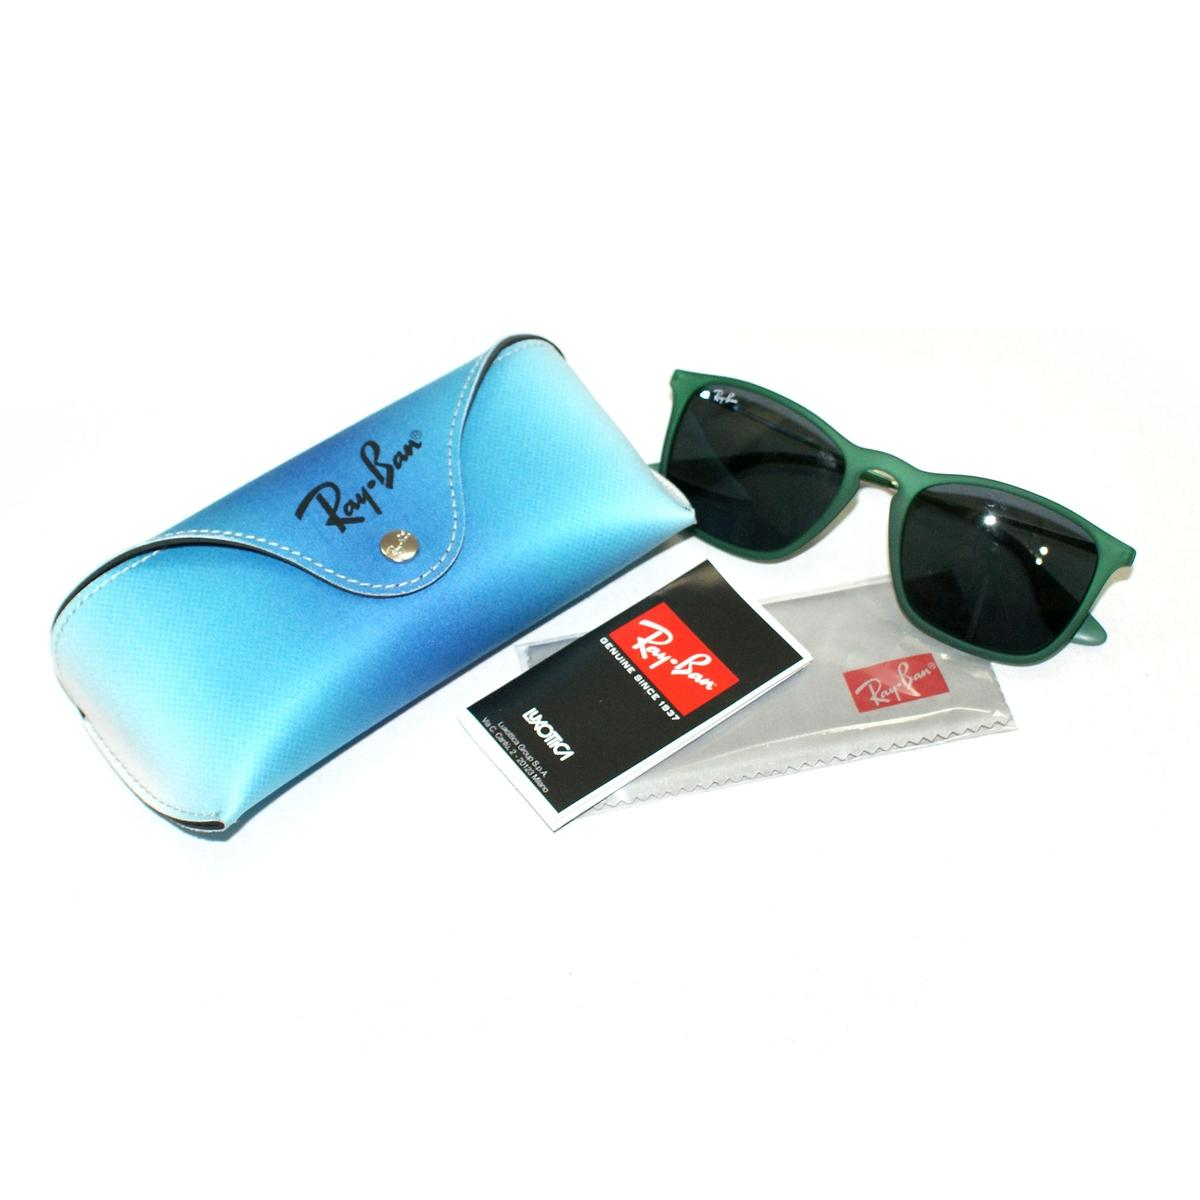 7054ead41f Ray-ban New Rubber Youngster Sunglasses